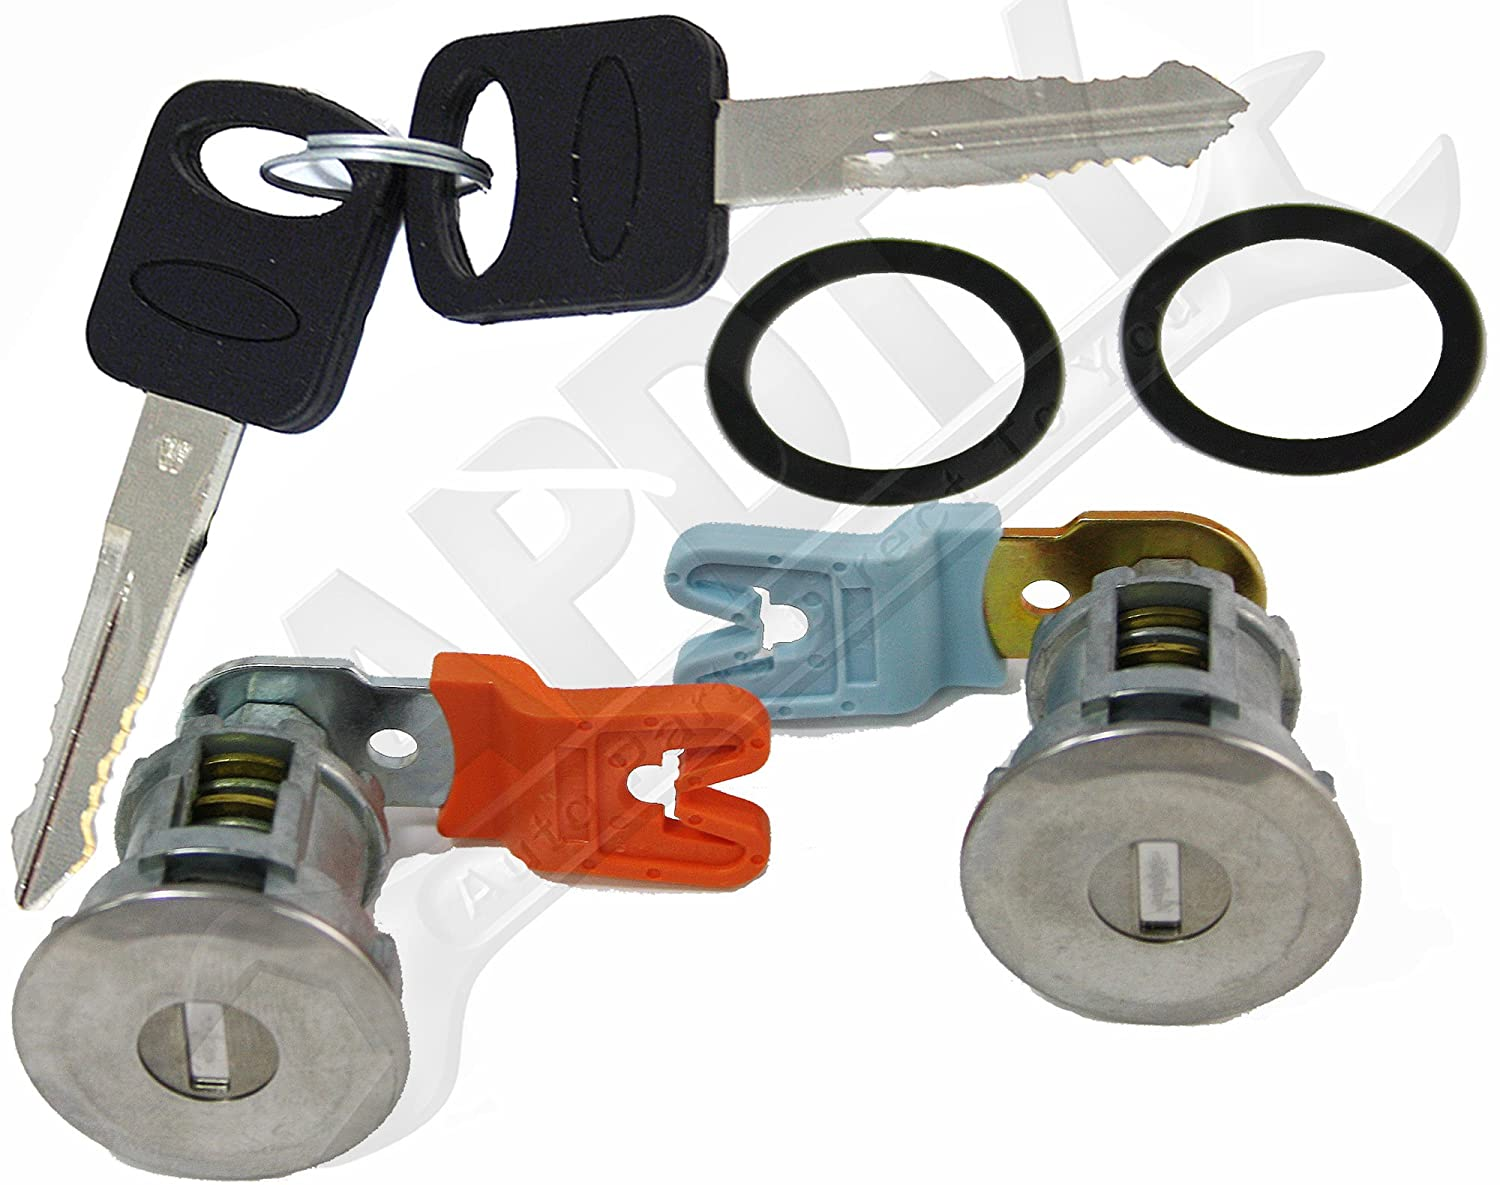 Except Smart Key or Transponder Key Models; Match Image To Your Vehicle To Verify APDTY EM69973 Door Lock Cylinder Pair With New Keys /& Gaskets For 1995-2011 Ford Trucks